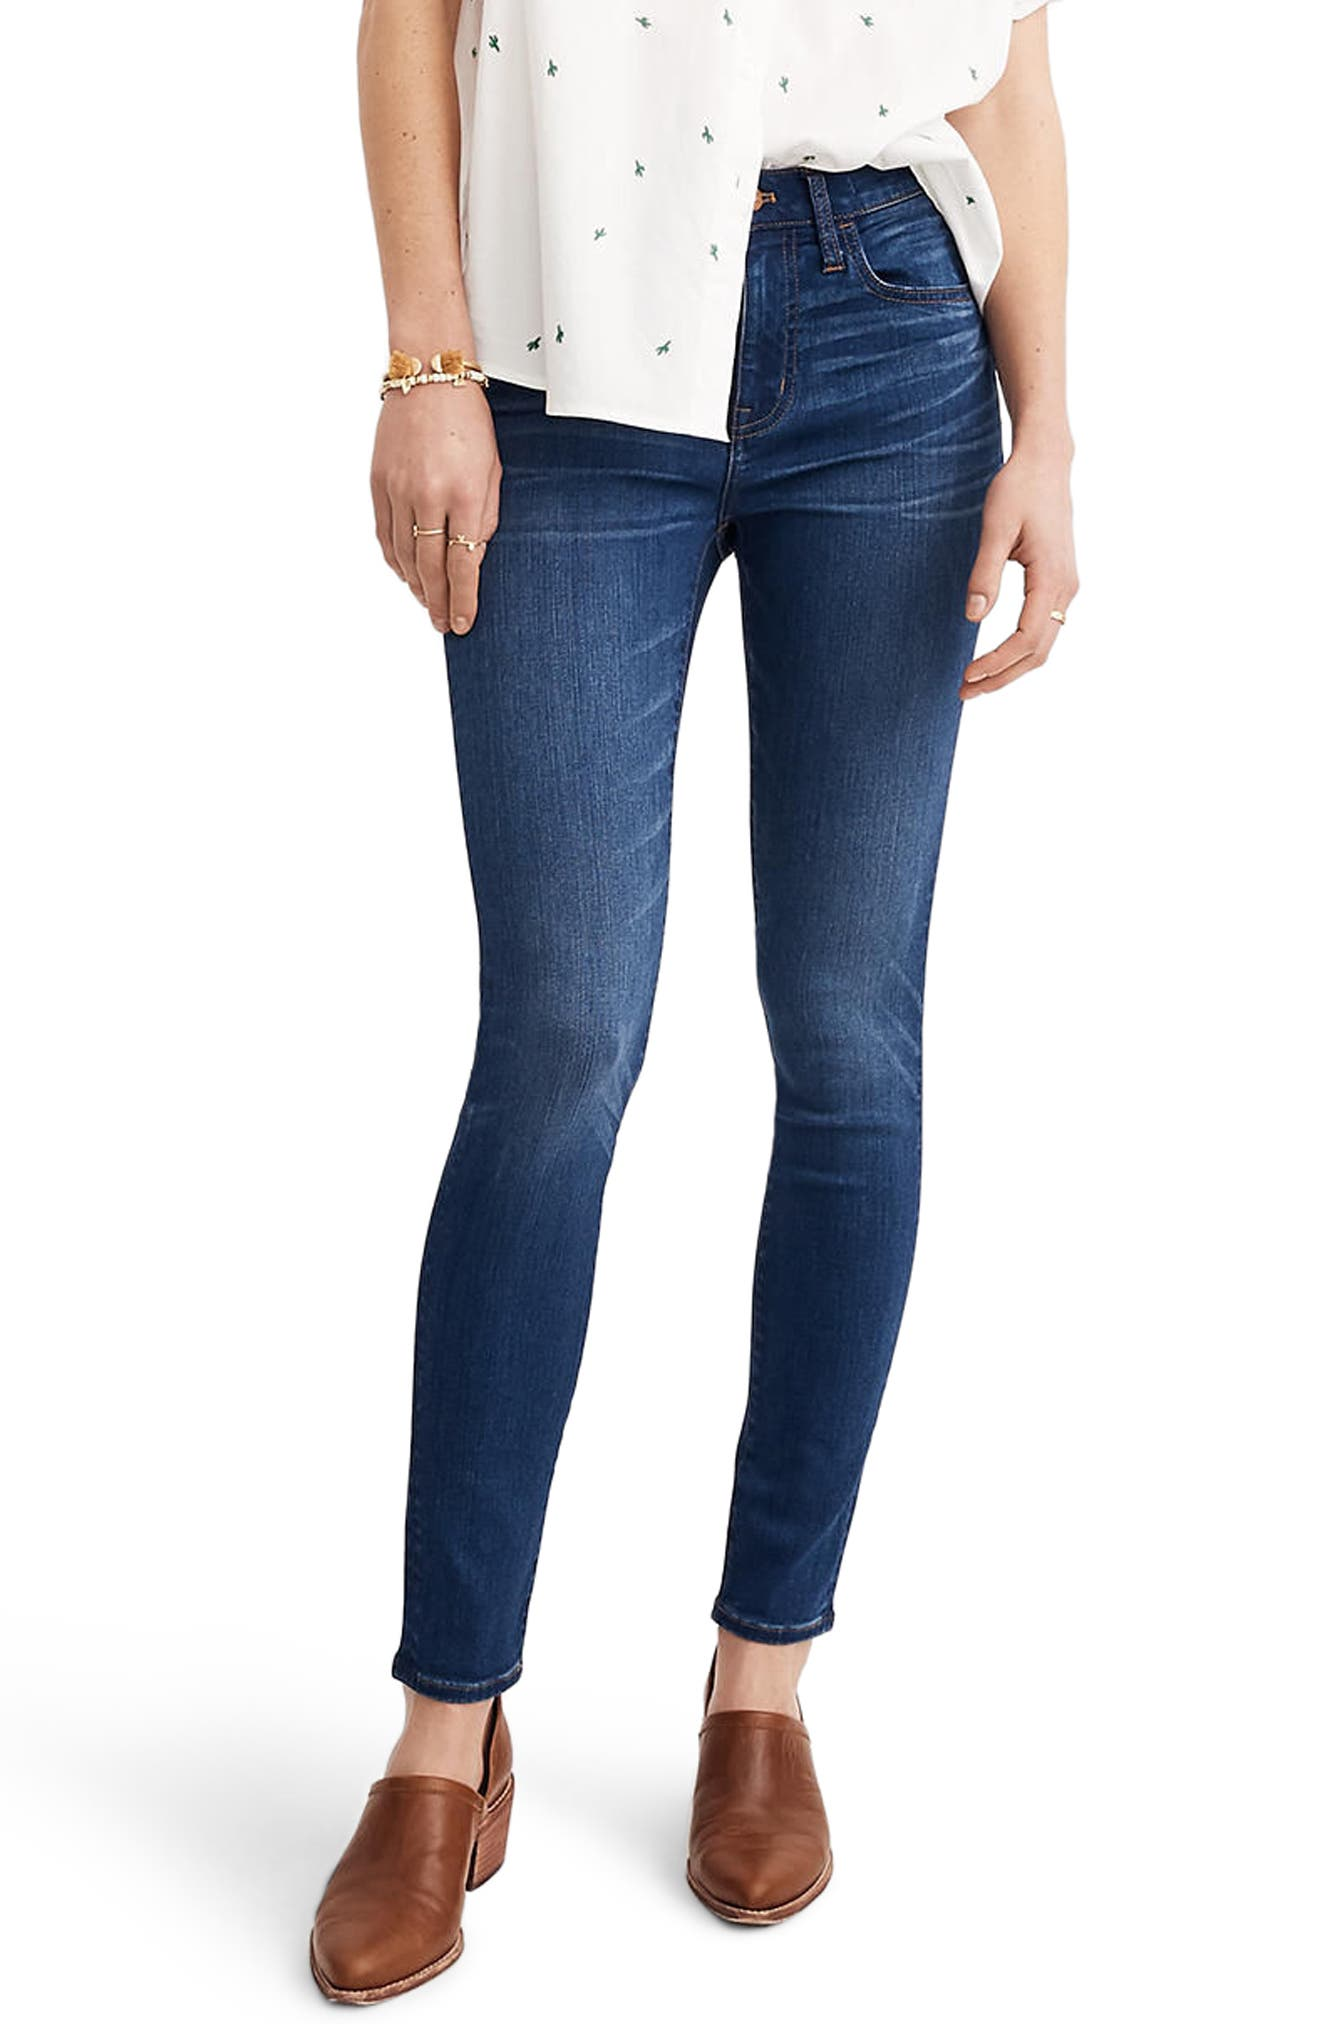 Roadtripper High Waist Skinny Jeans,                             Main thumbnail 1, color,                             ORSON WASH